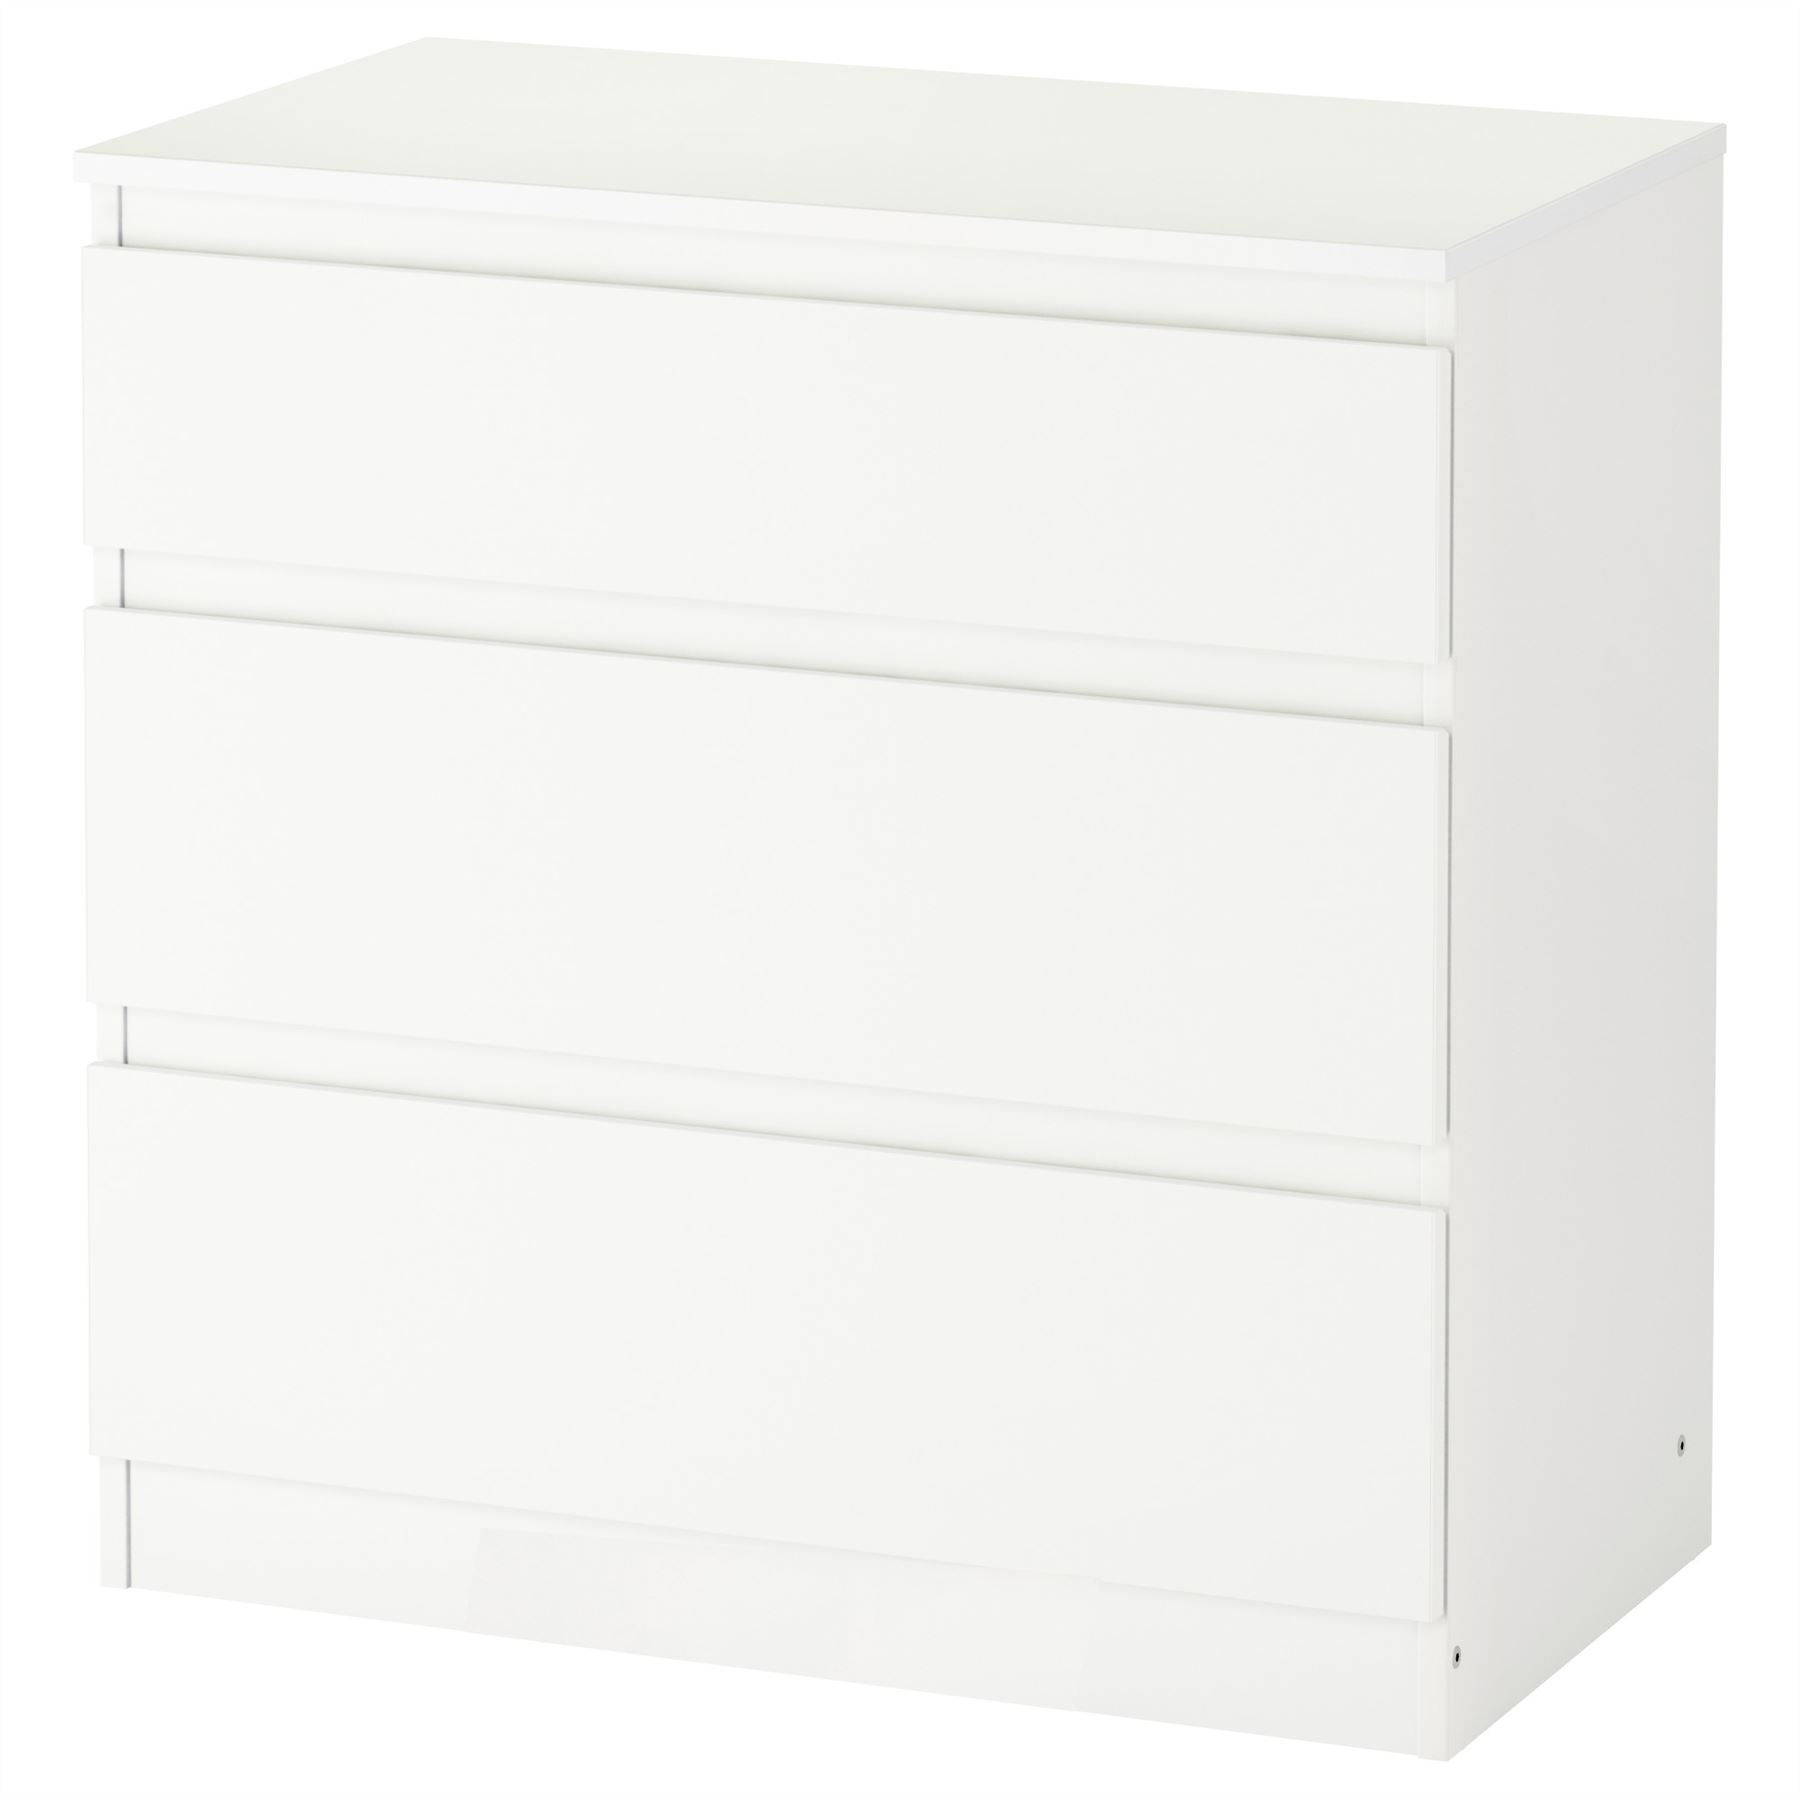 Ikea Kullen Chest Of Drawers White Oak Effect Bedroom Furniture NEW